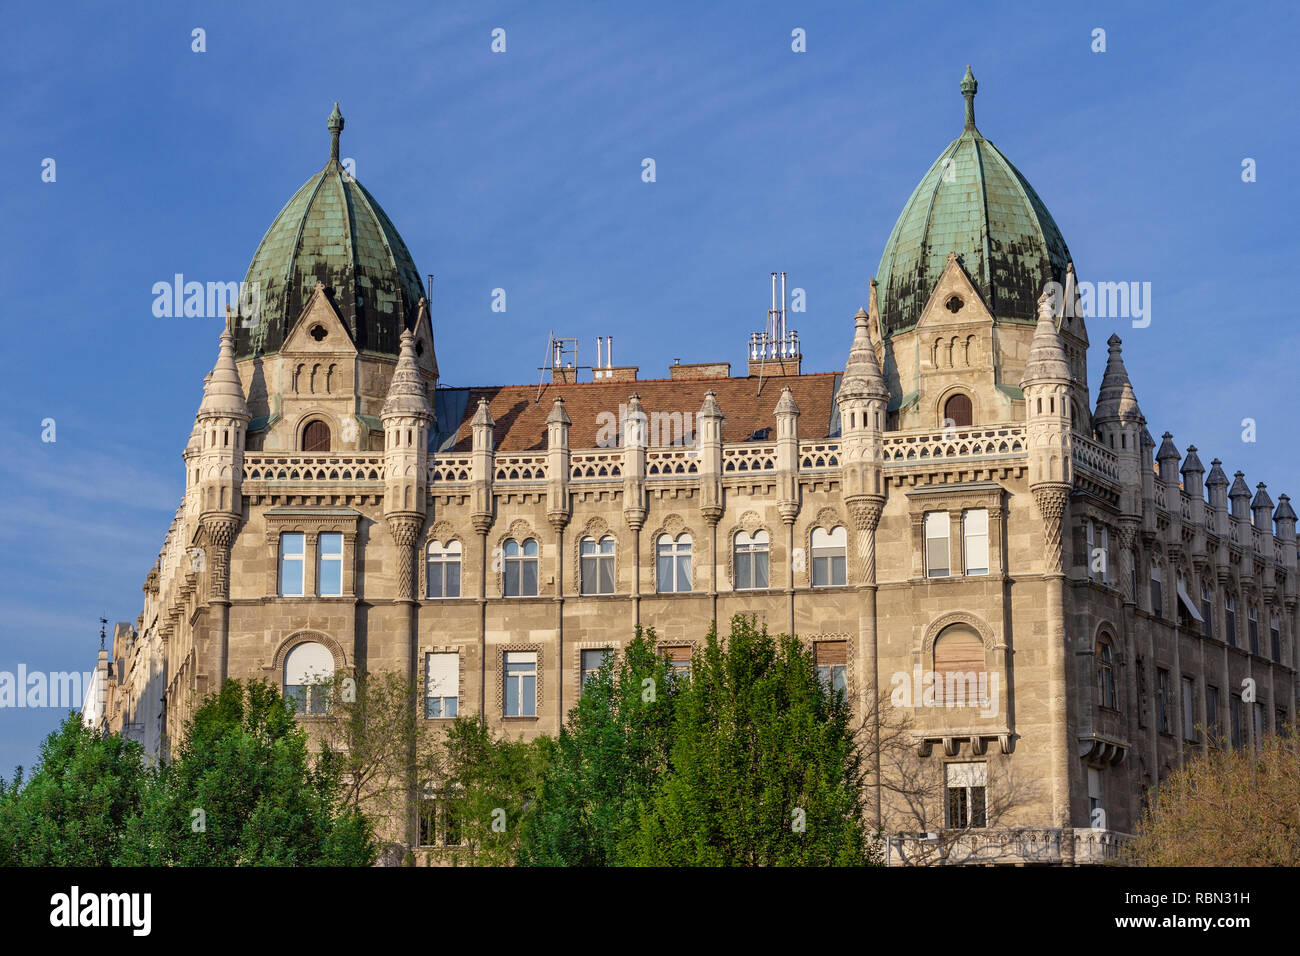 An architecturally beautiful building on the perimeter of Liberty Square, Budapest, Hungary - Stock Image